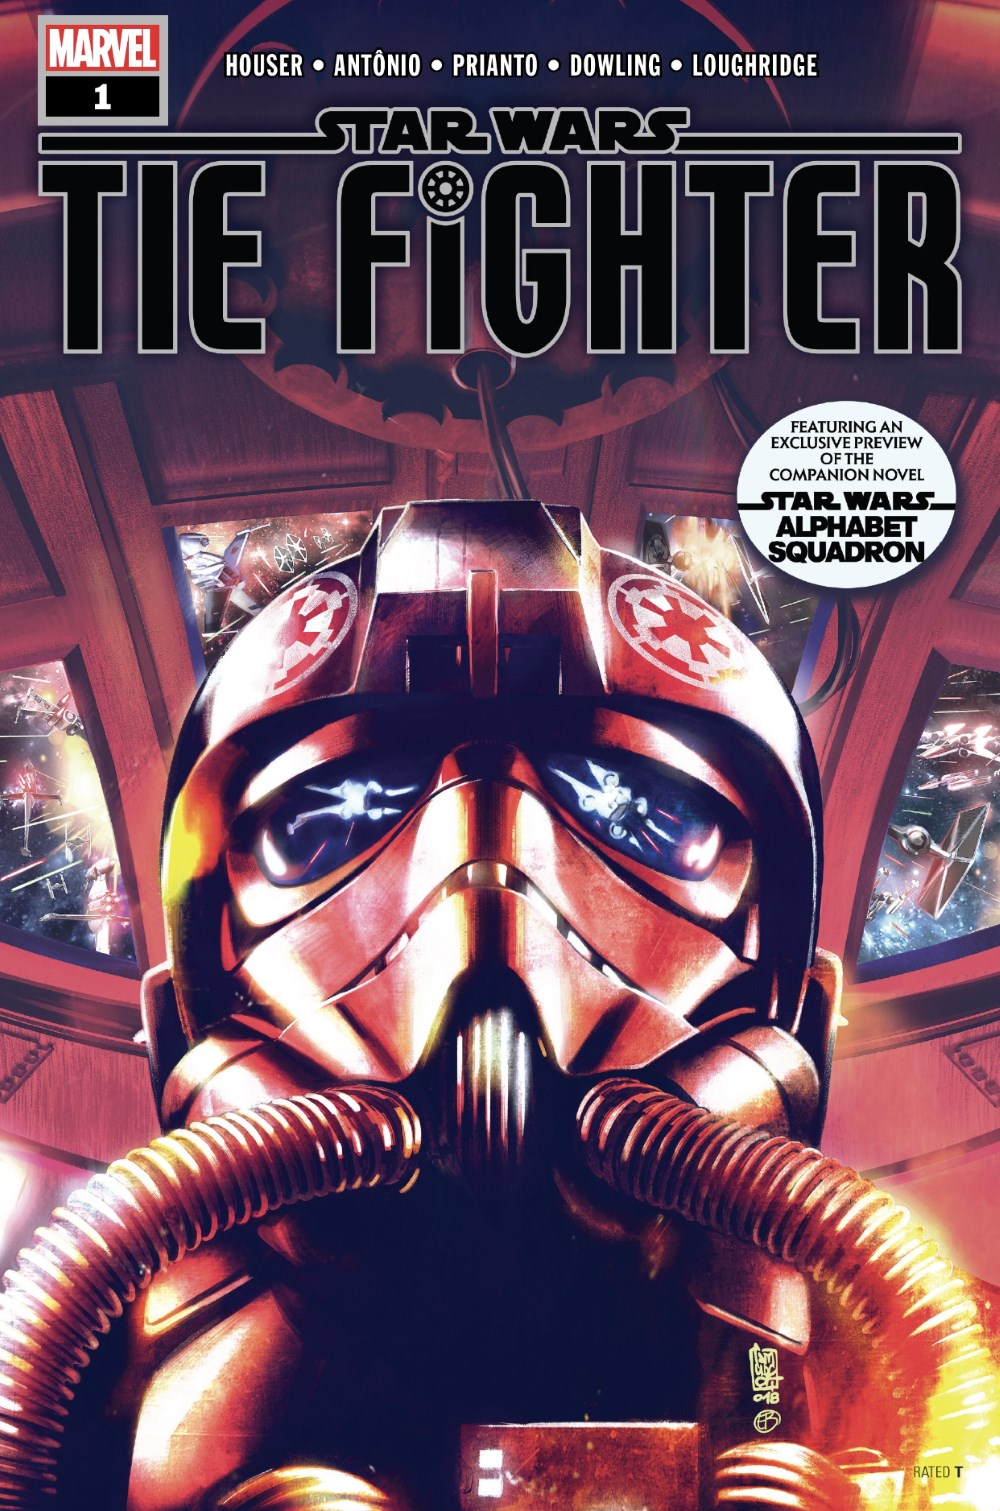 TIE Fighter #1 Cover